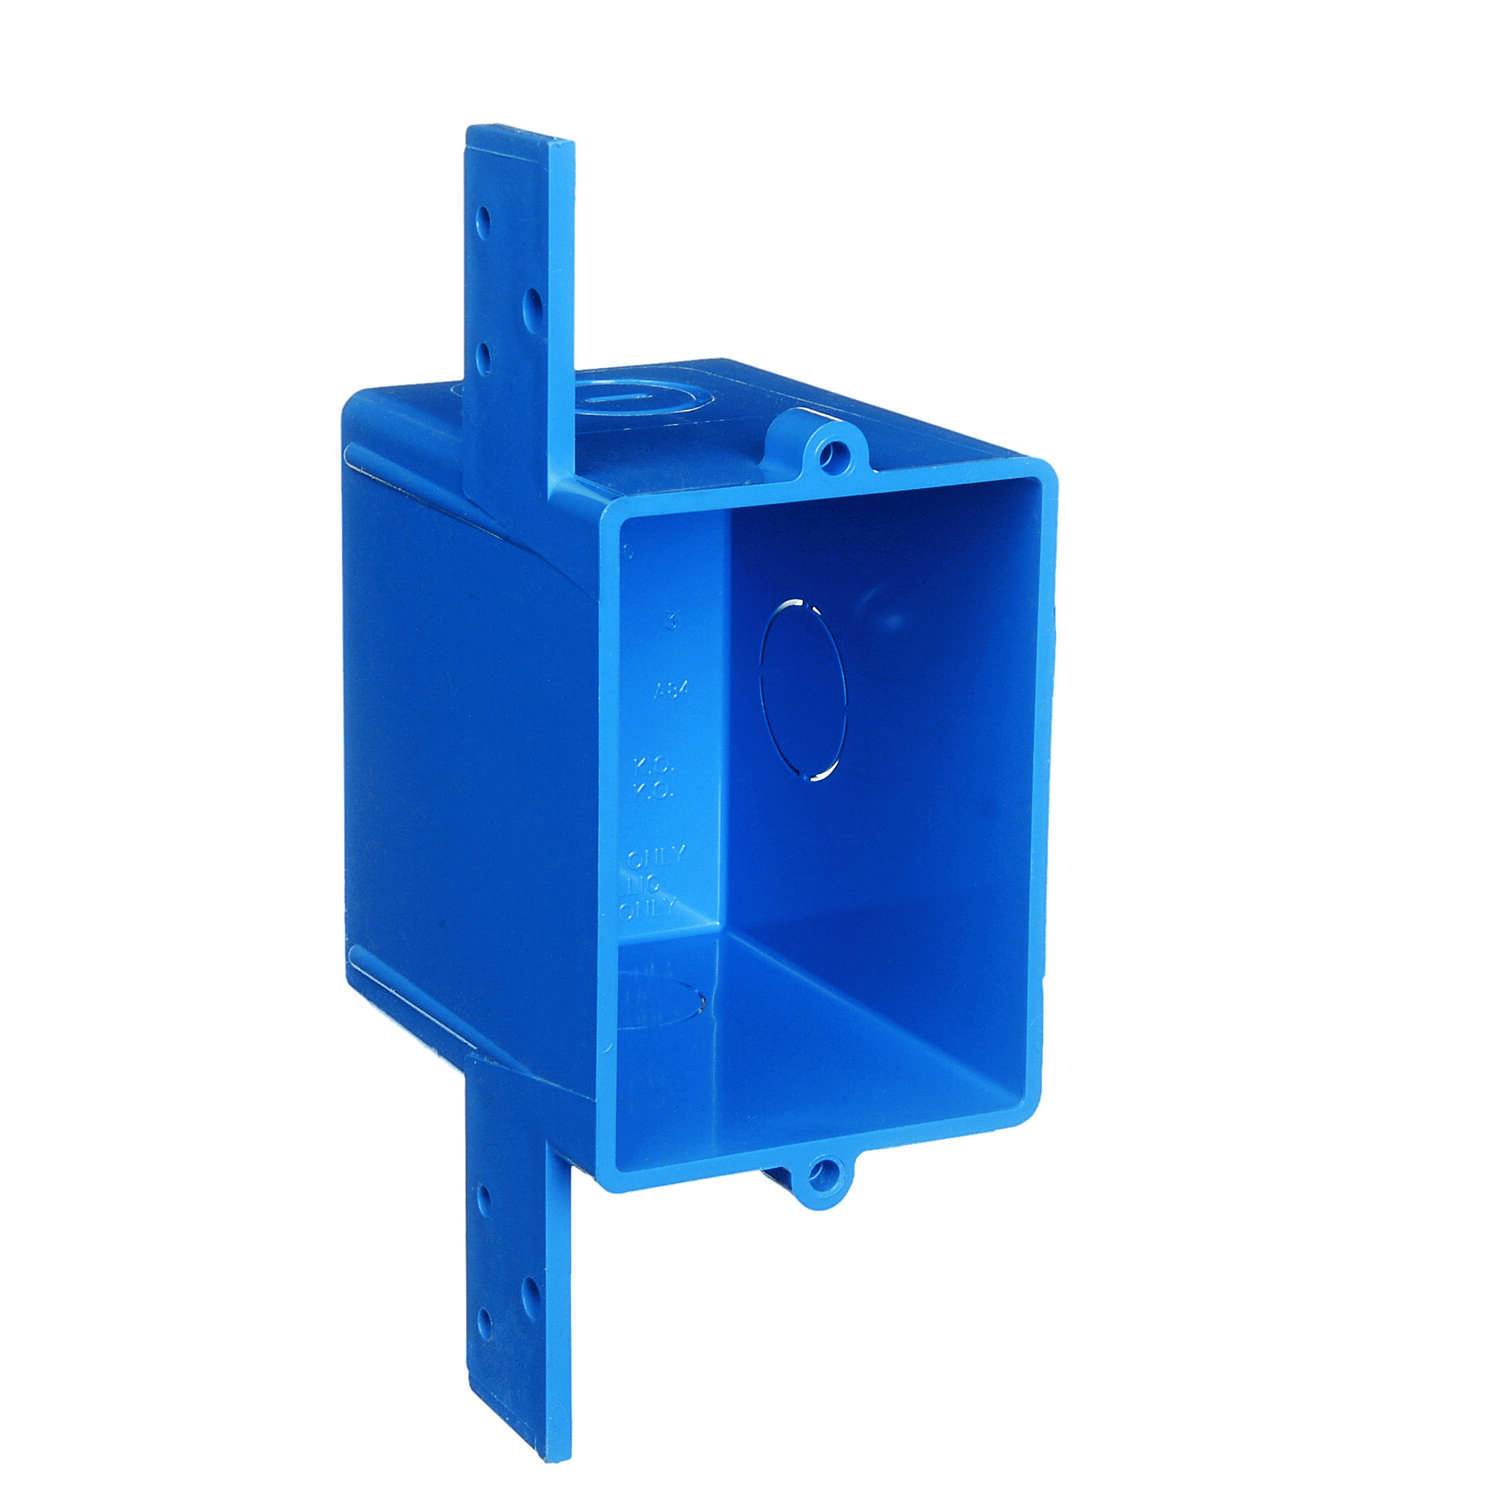 Carlon  Rectangle  1 Gang  Outlet Box  2.92 in. Blue  PVC